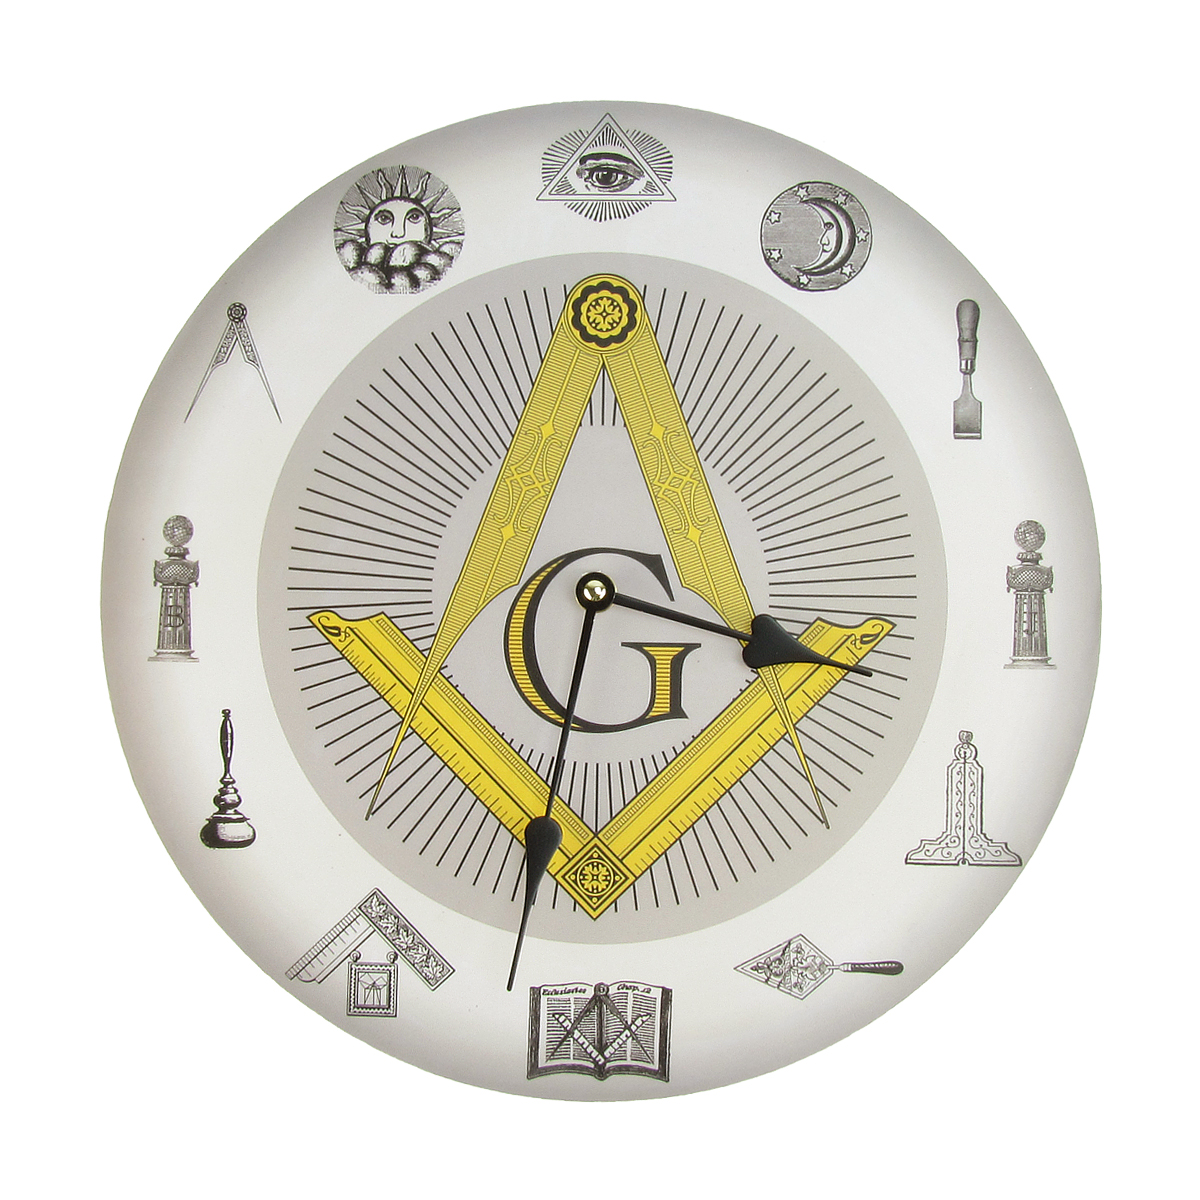 Masonic Symbols Square And Compass Freemason Wall Clock Master Free Mason Gift